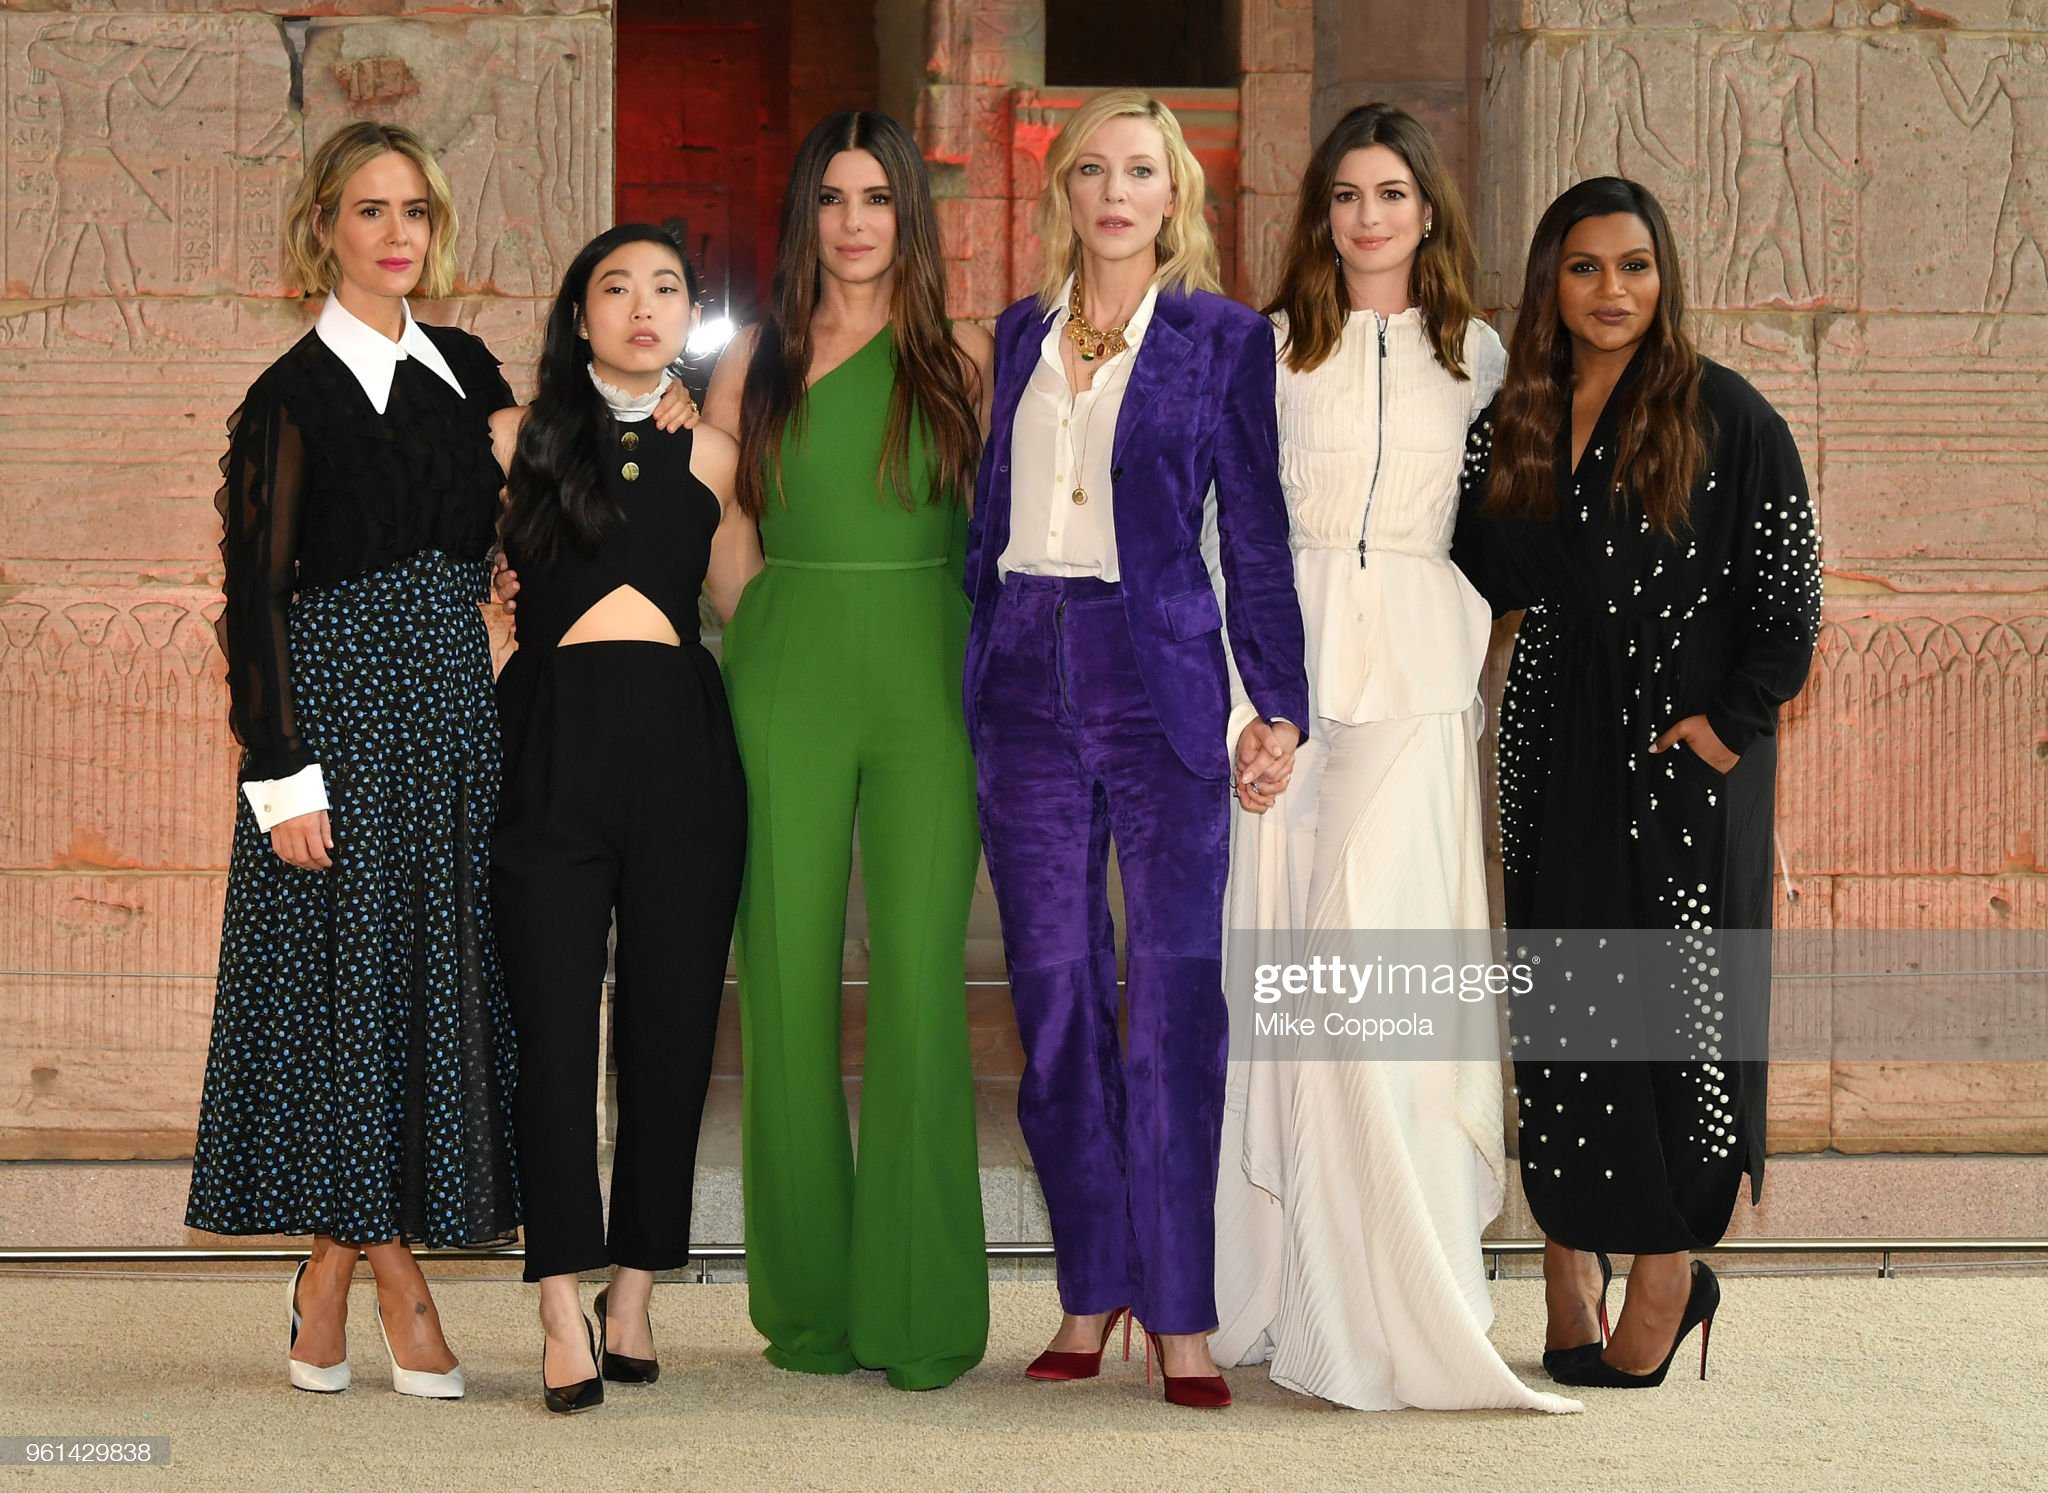 ¿Cuánto mide Anne Hathaway? - Real height Sarah-paulson-awkwafina-sandra-bullock-cate-blanchett-anne-hathaway-picture-id961429838?s=2048x2048